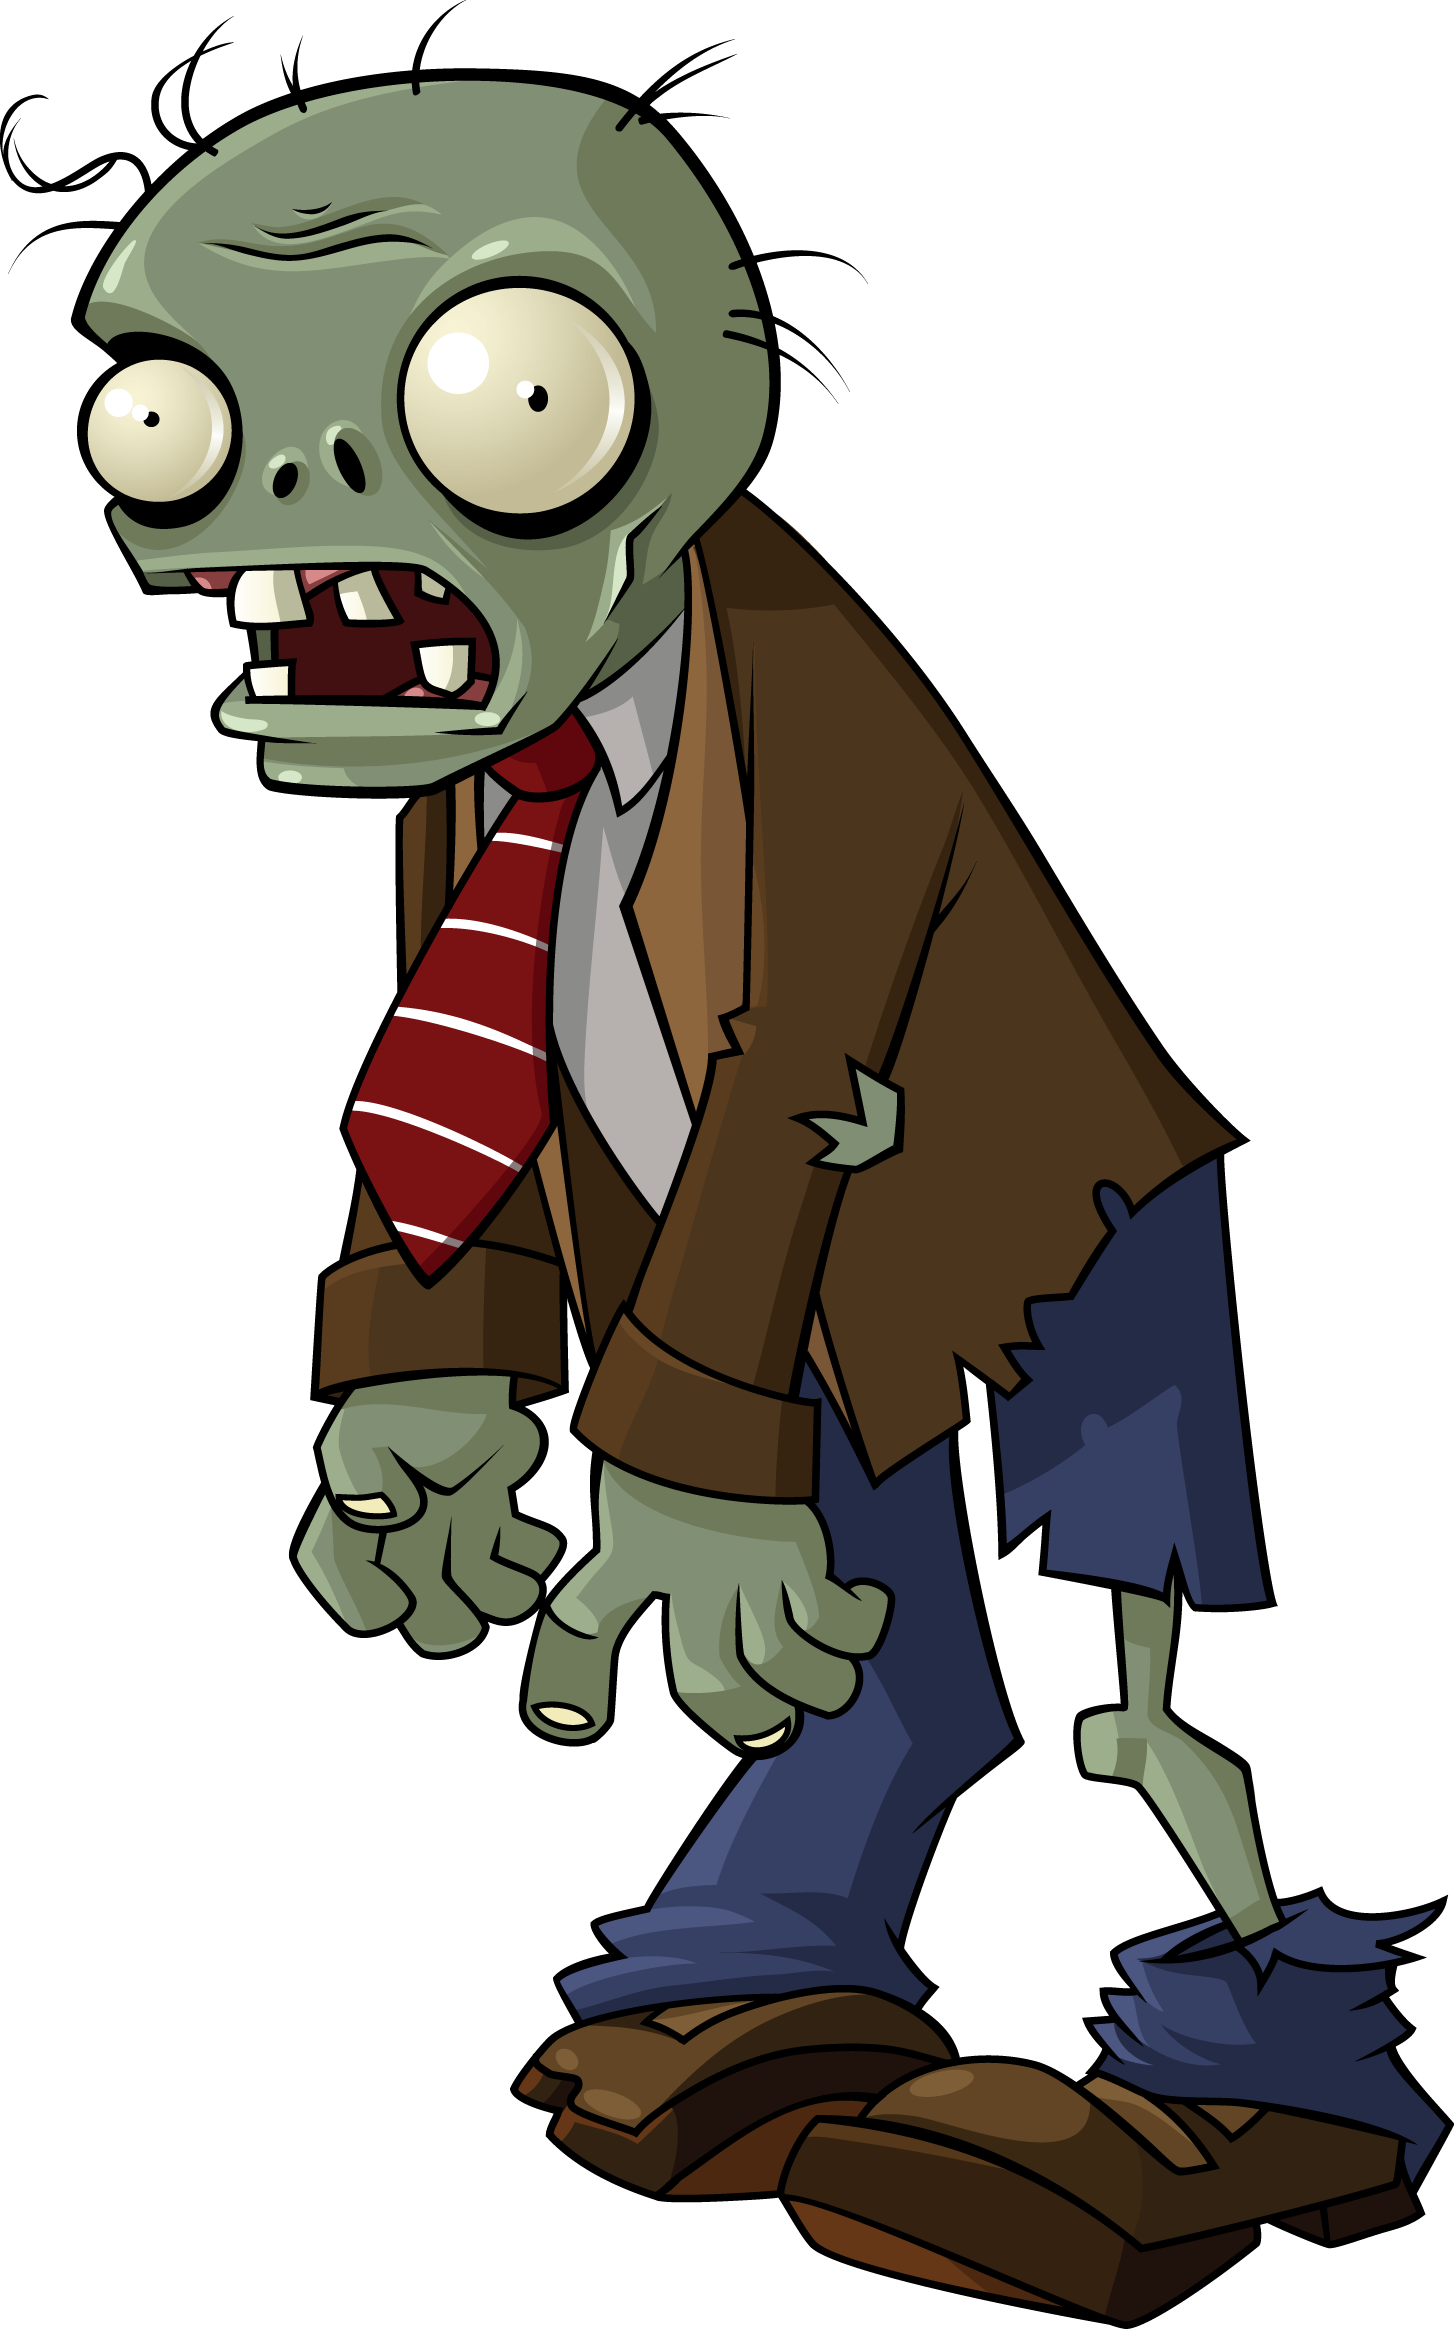 Zombie dog clipart clip art library library Zombie | Inkagames English Wiki | FANDOM powered by Wikia clip art library library